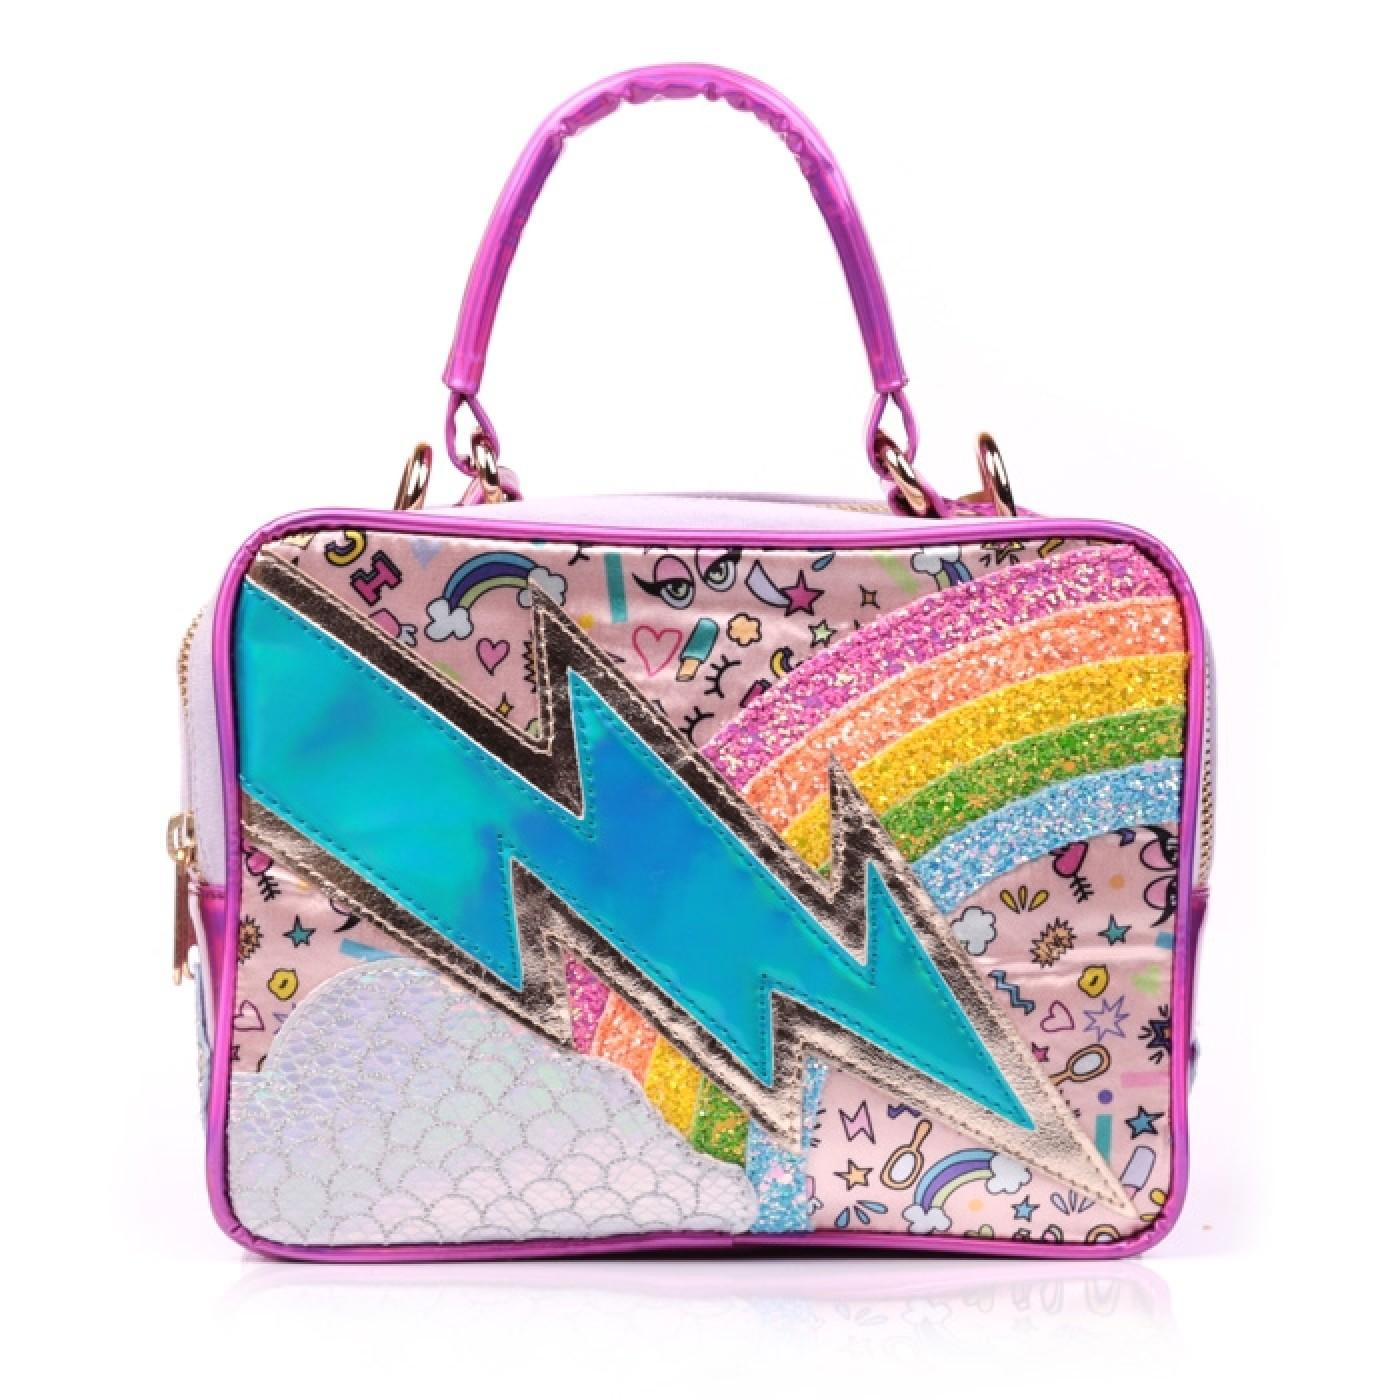 Rainbow Thunder IRREGULAR CHOICE Lightning bag P